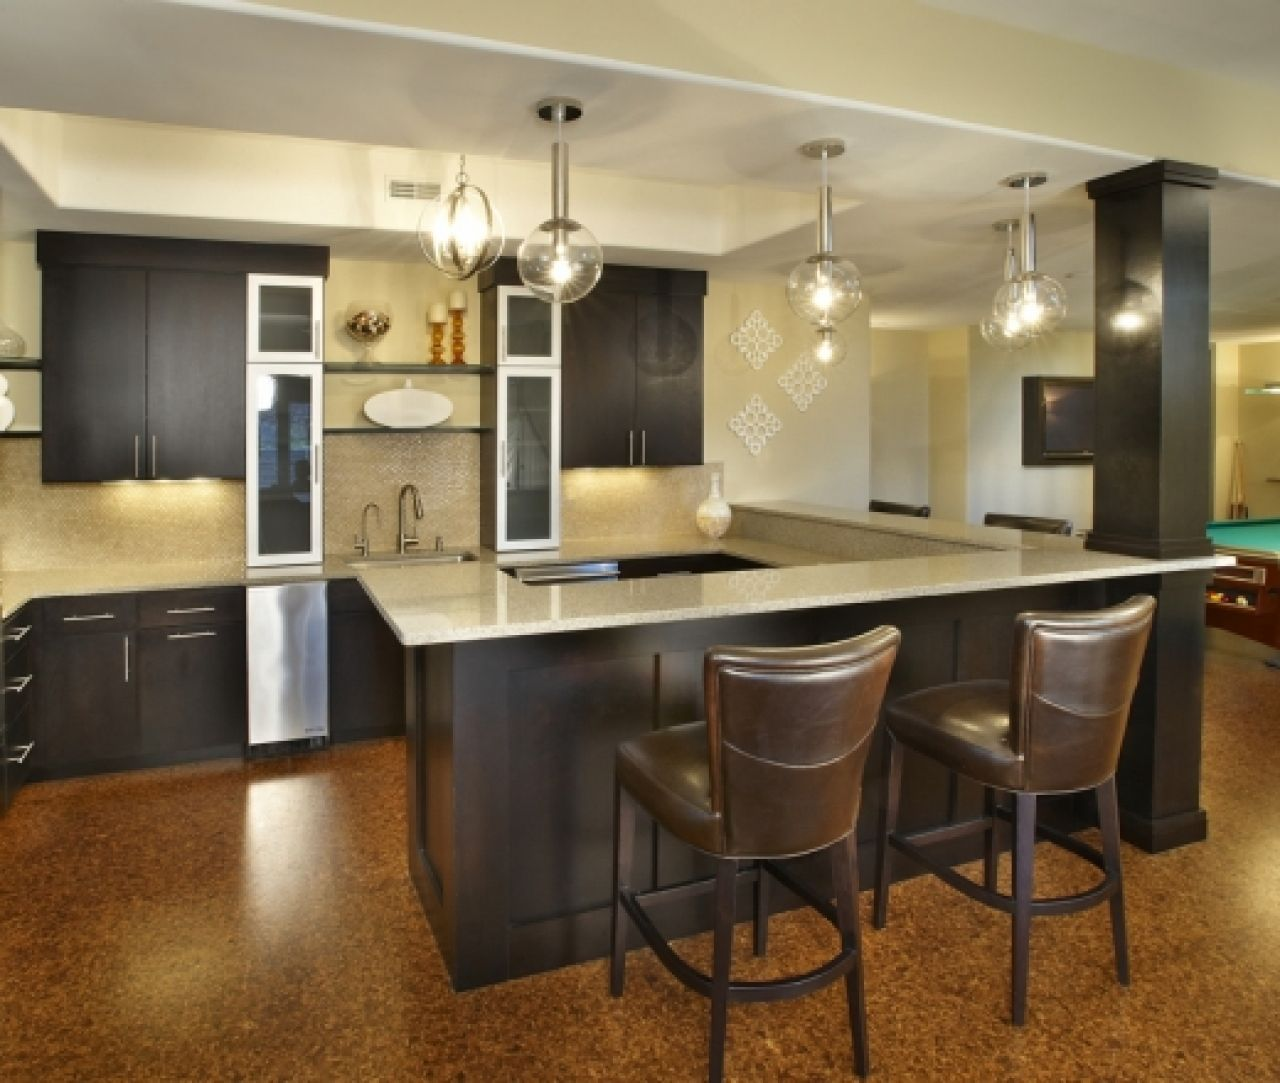 Beige And Black Kitchen Ideas: Amazing Designs Of U-Shaped Kitchen : Attractive UShaped